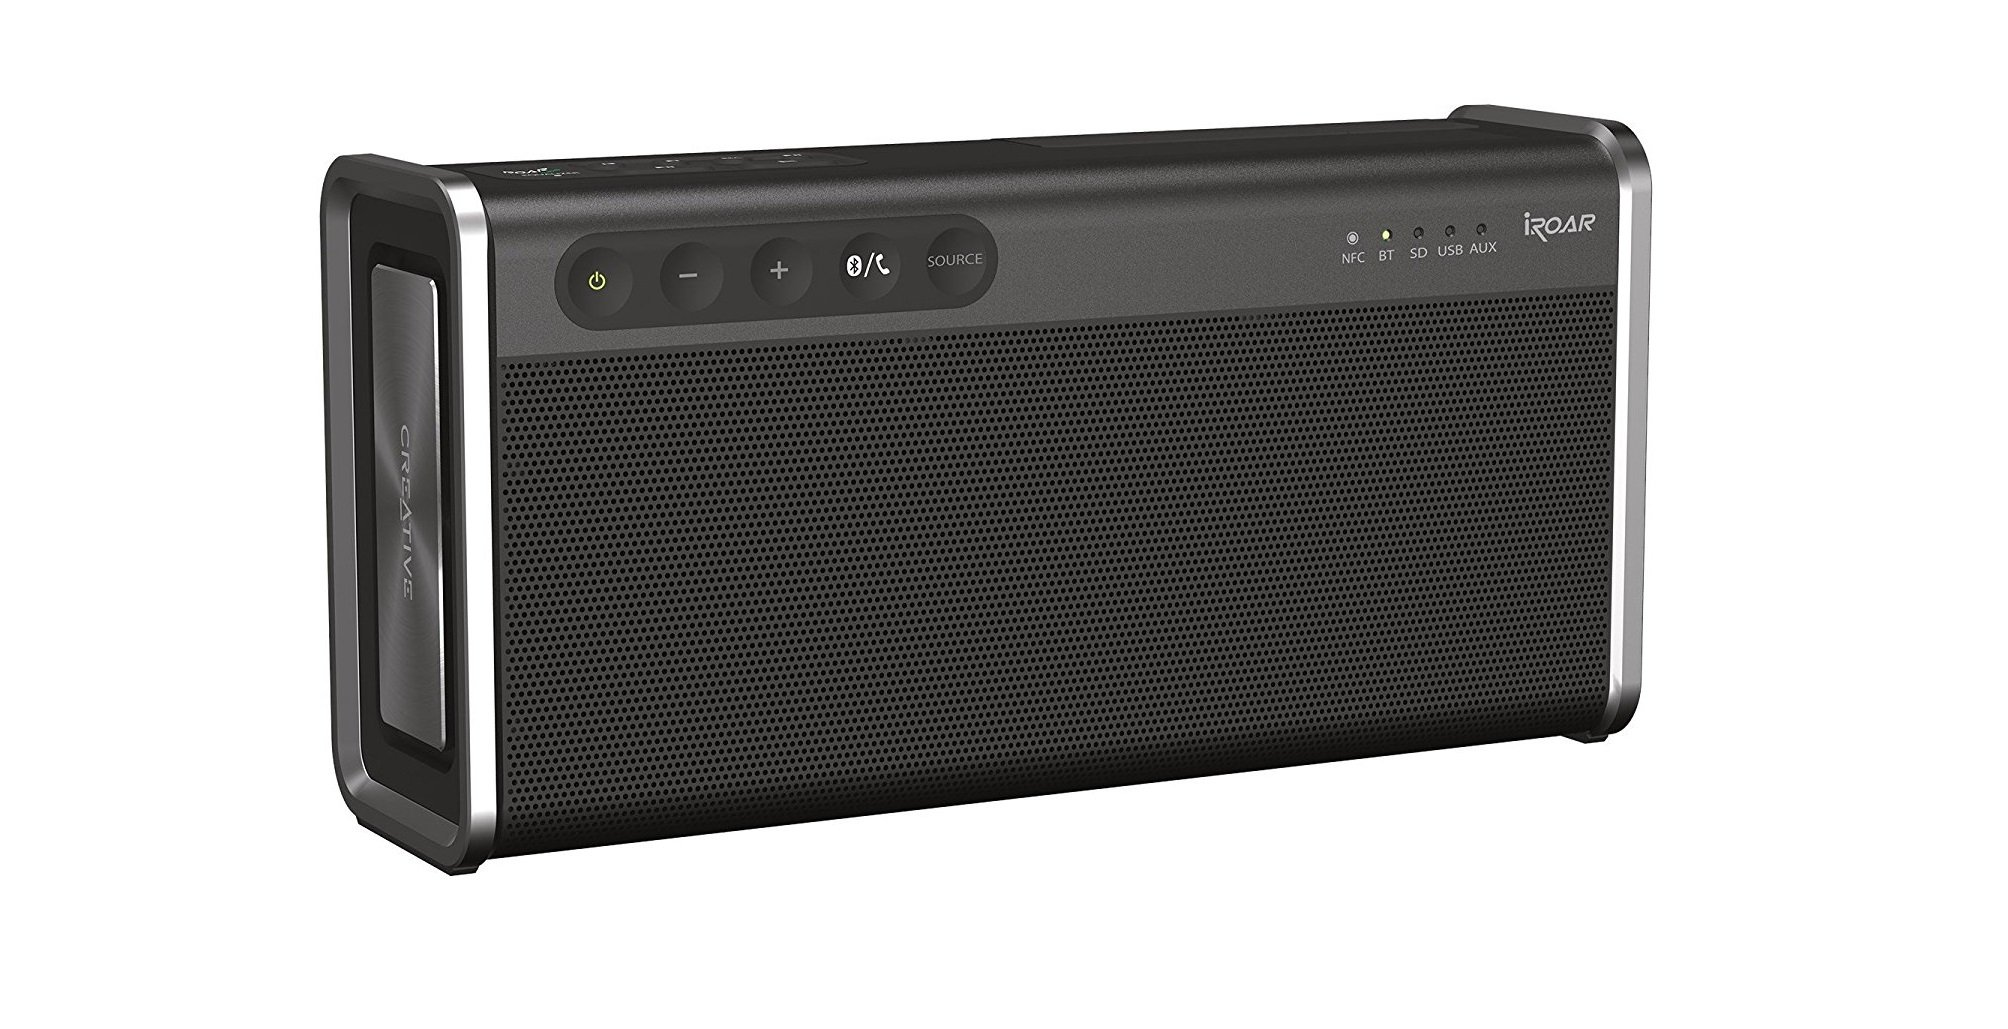 Best Bluetooth Speakers 2018 Portable Indoor Waterproof And Speaker Jbl Charge Mini 2 Plus Wireless Smartphone Aux The Creative Iroar Go Is A Do It All Has Host Of Features That Make One Most Complete On Market